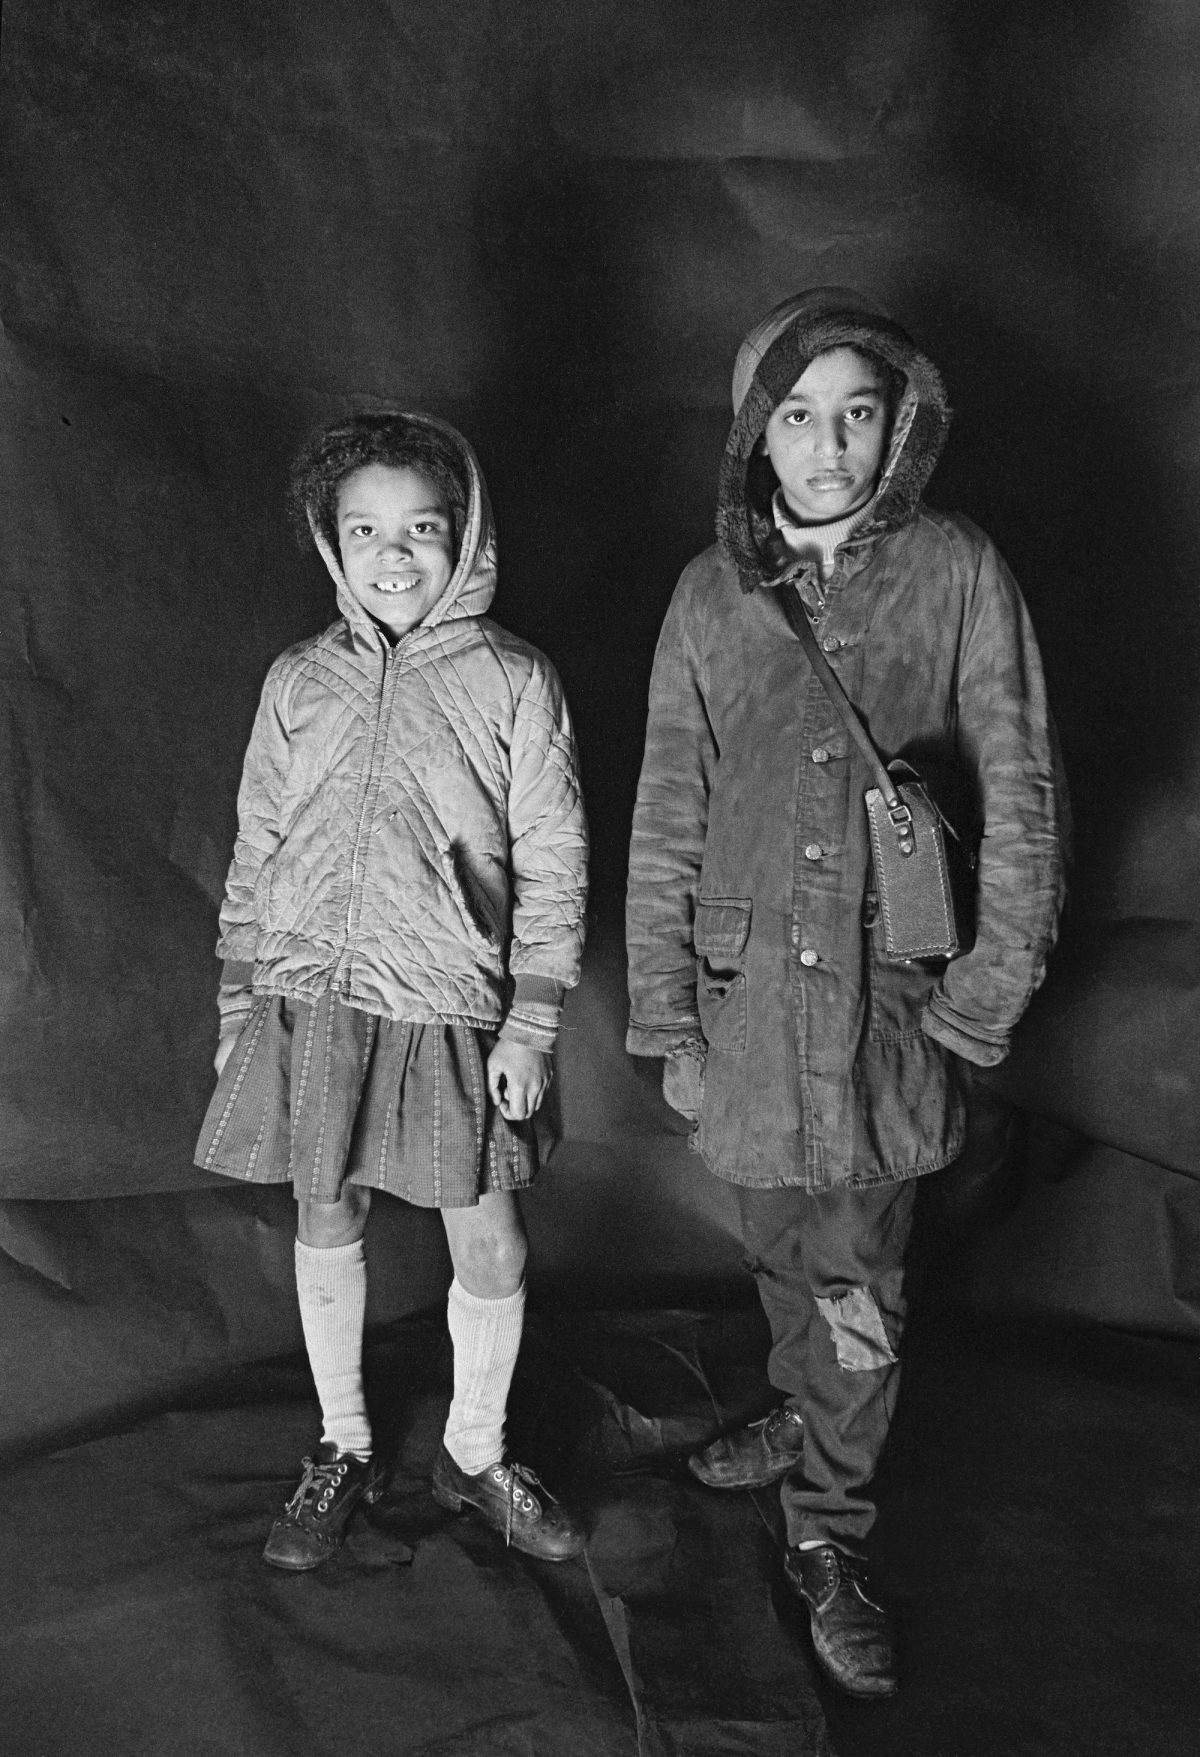 Portrait of Angela Loretta Lindsey, aged 8, with her brother Mark Emanuel Lindsey in Meadows's free photographic studio at no.79B Greame Street, Moss Side, Manchester, February - April 1972.